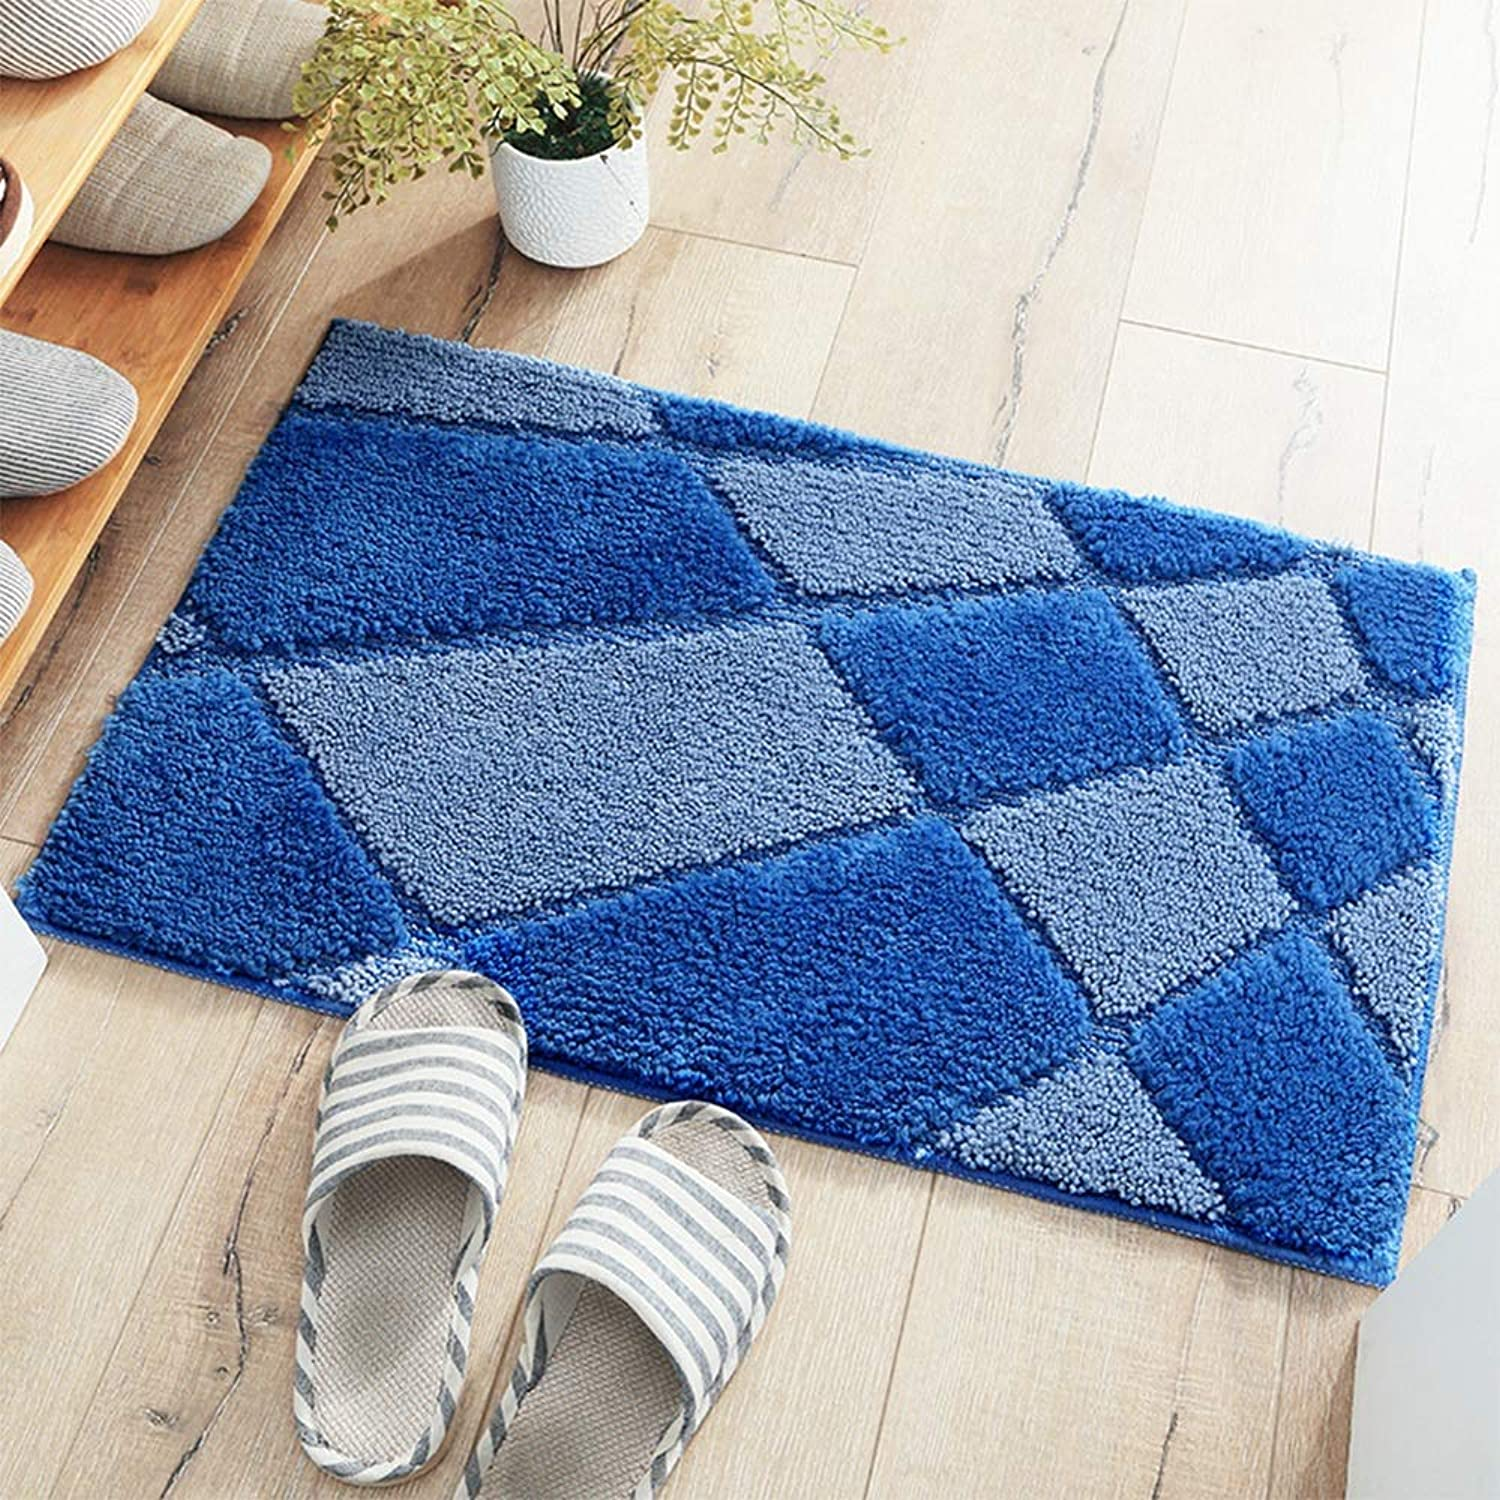 Door mat Floor Mat - Polyester Fabric Environmentally Friendly Hot Melt Rubber Sole, Soft and Comfortable, Absorbent and Non-Slip, Home Absorbent Bedroom Bathroom Door Anti-Slip Mat - 3 Styles 2 Siz